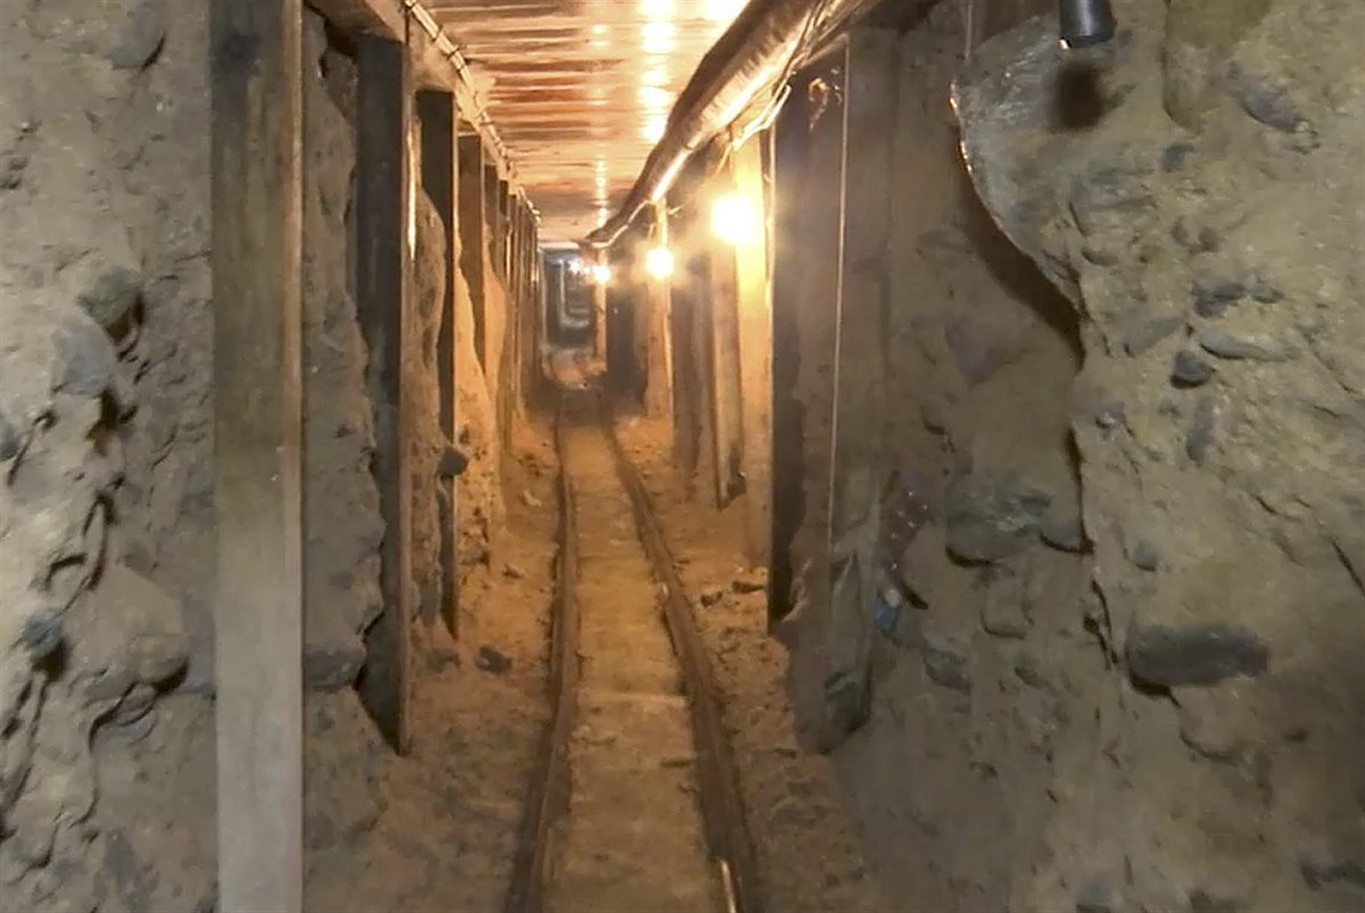 Mexico finds 2 border tunnels leading from Tijuana into US - 660 NEWS